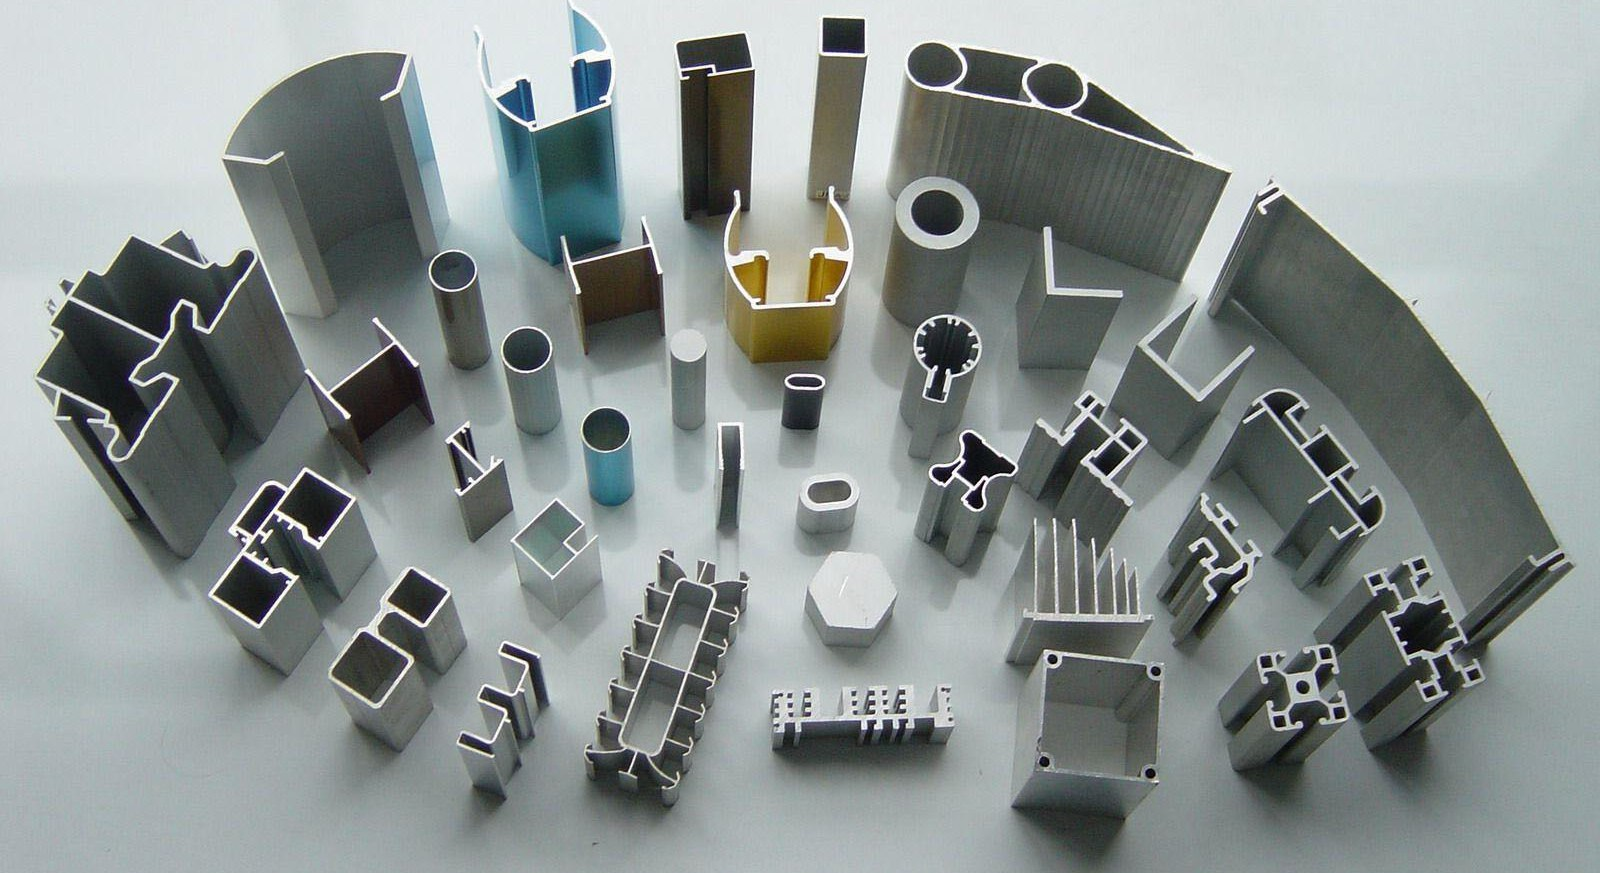 Standard Extruded Aluminum Shapes Made With The Extrusion